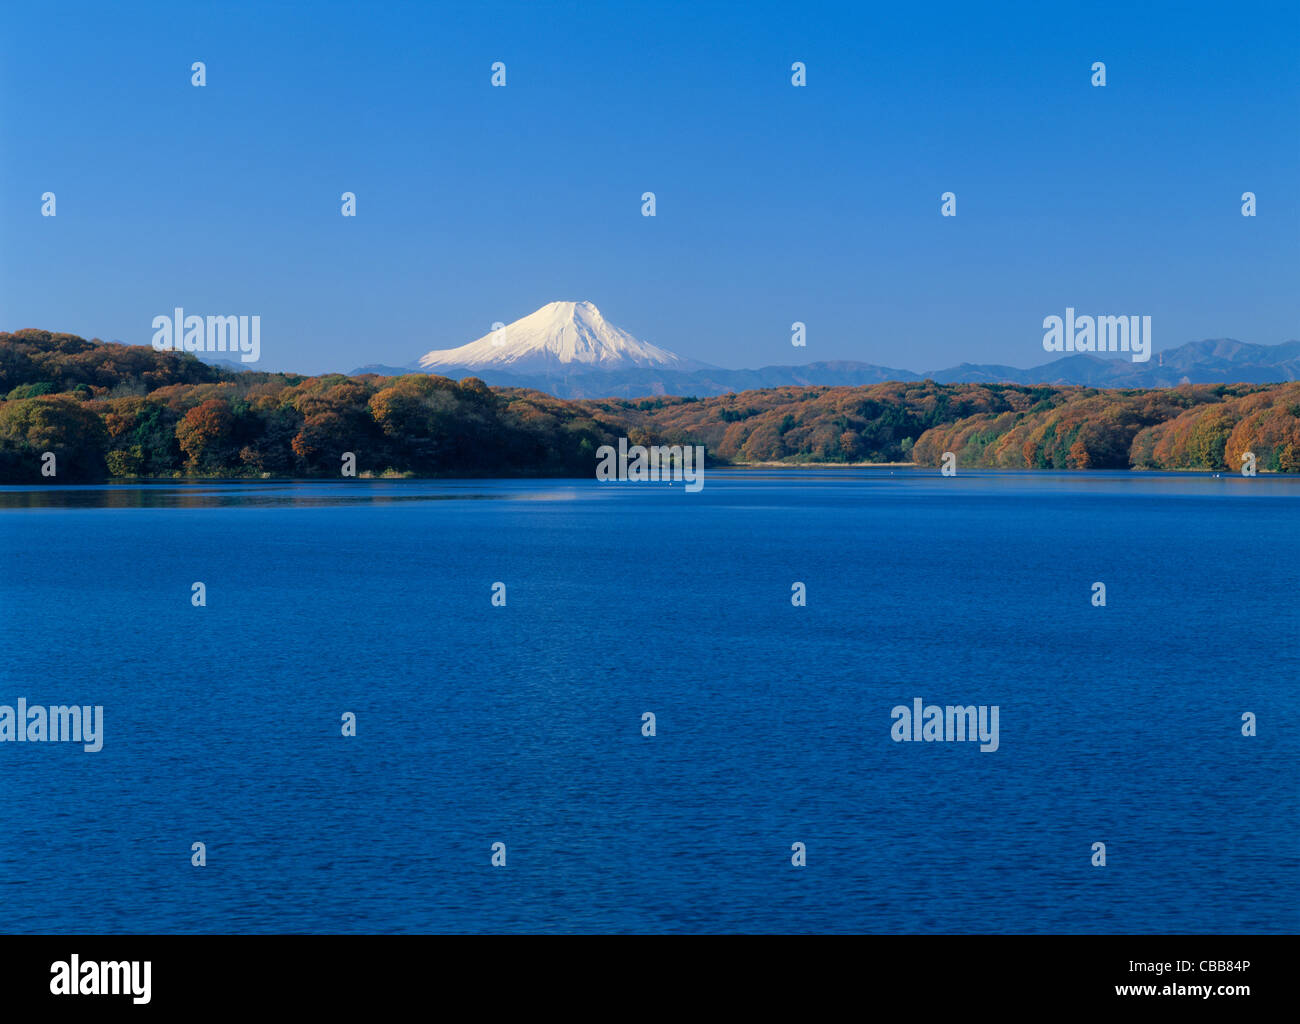 Mount Fuji and Lake Sayama, Tokorozawa, Saitama, Japan - Stock Image